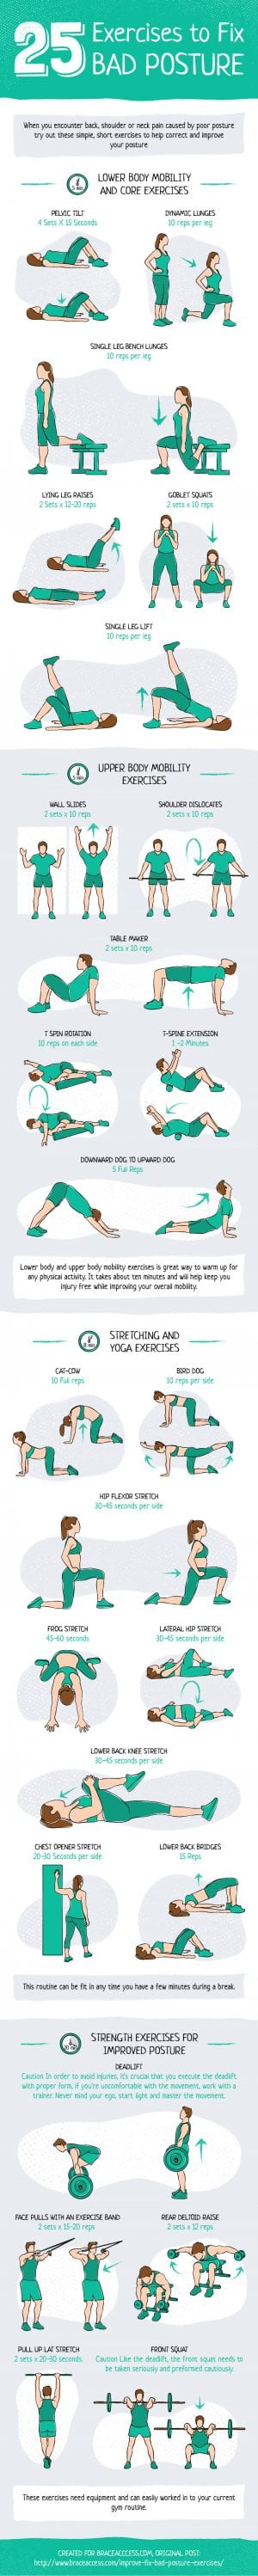 25 Exercises to Help Improve Your Posture